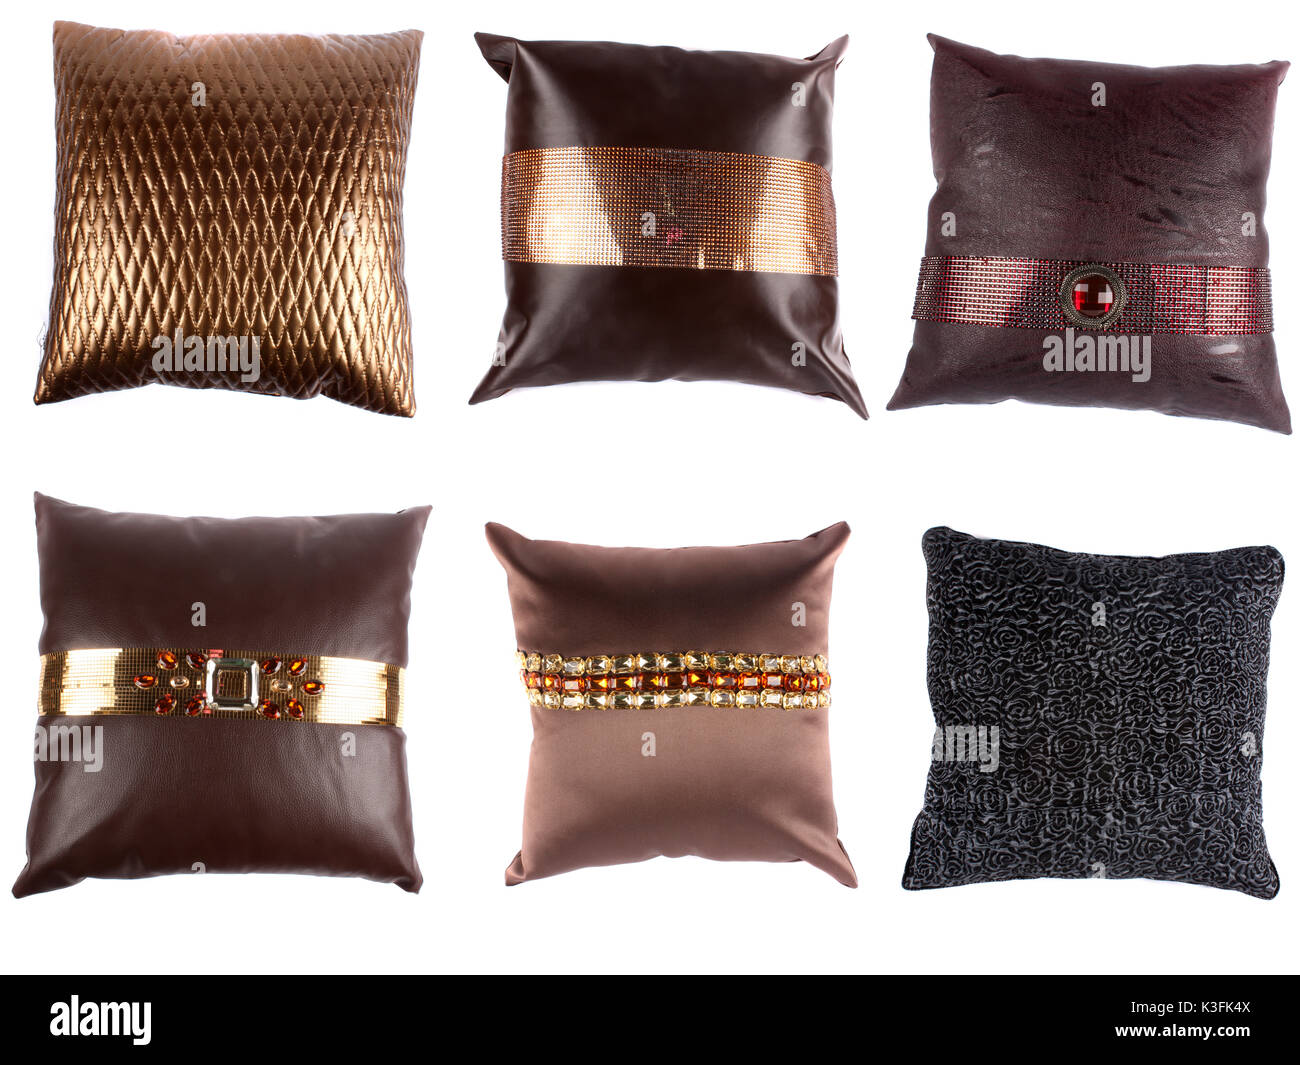 A set of beautiful designer pillows with inticrate designs, on white studio background - Stock Image